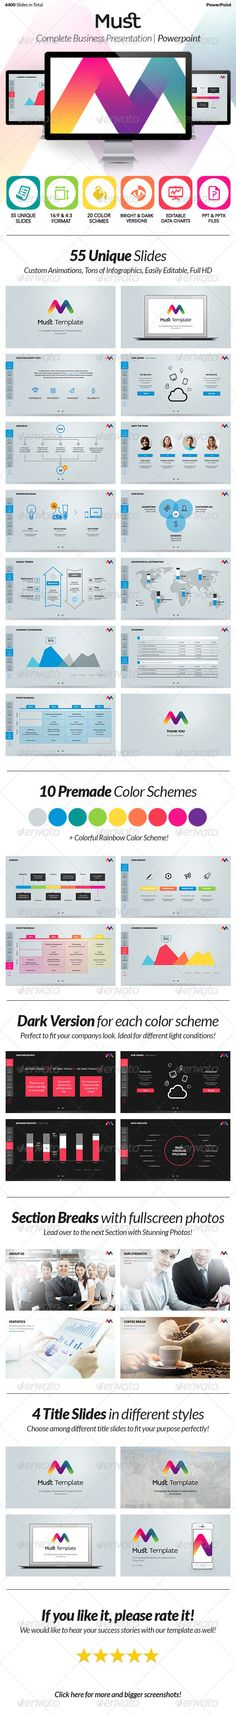 Must PowerPoint - Complete Business Presentation - Powerpoint Templates Presentation Templates